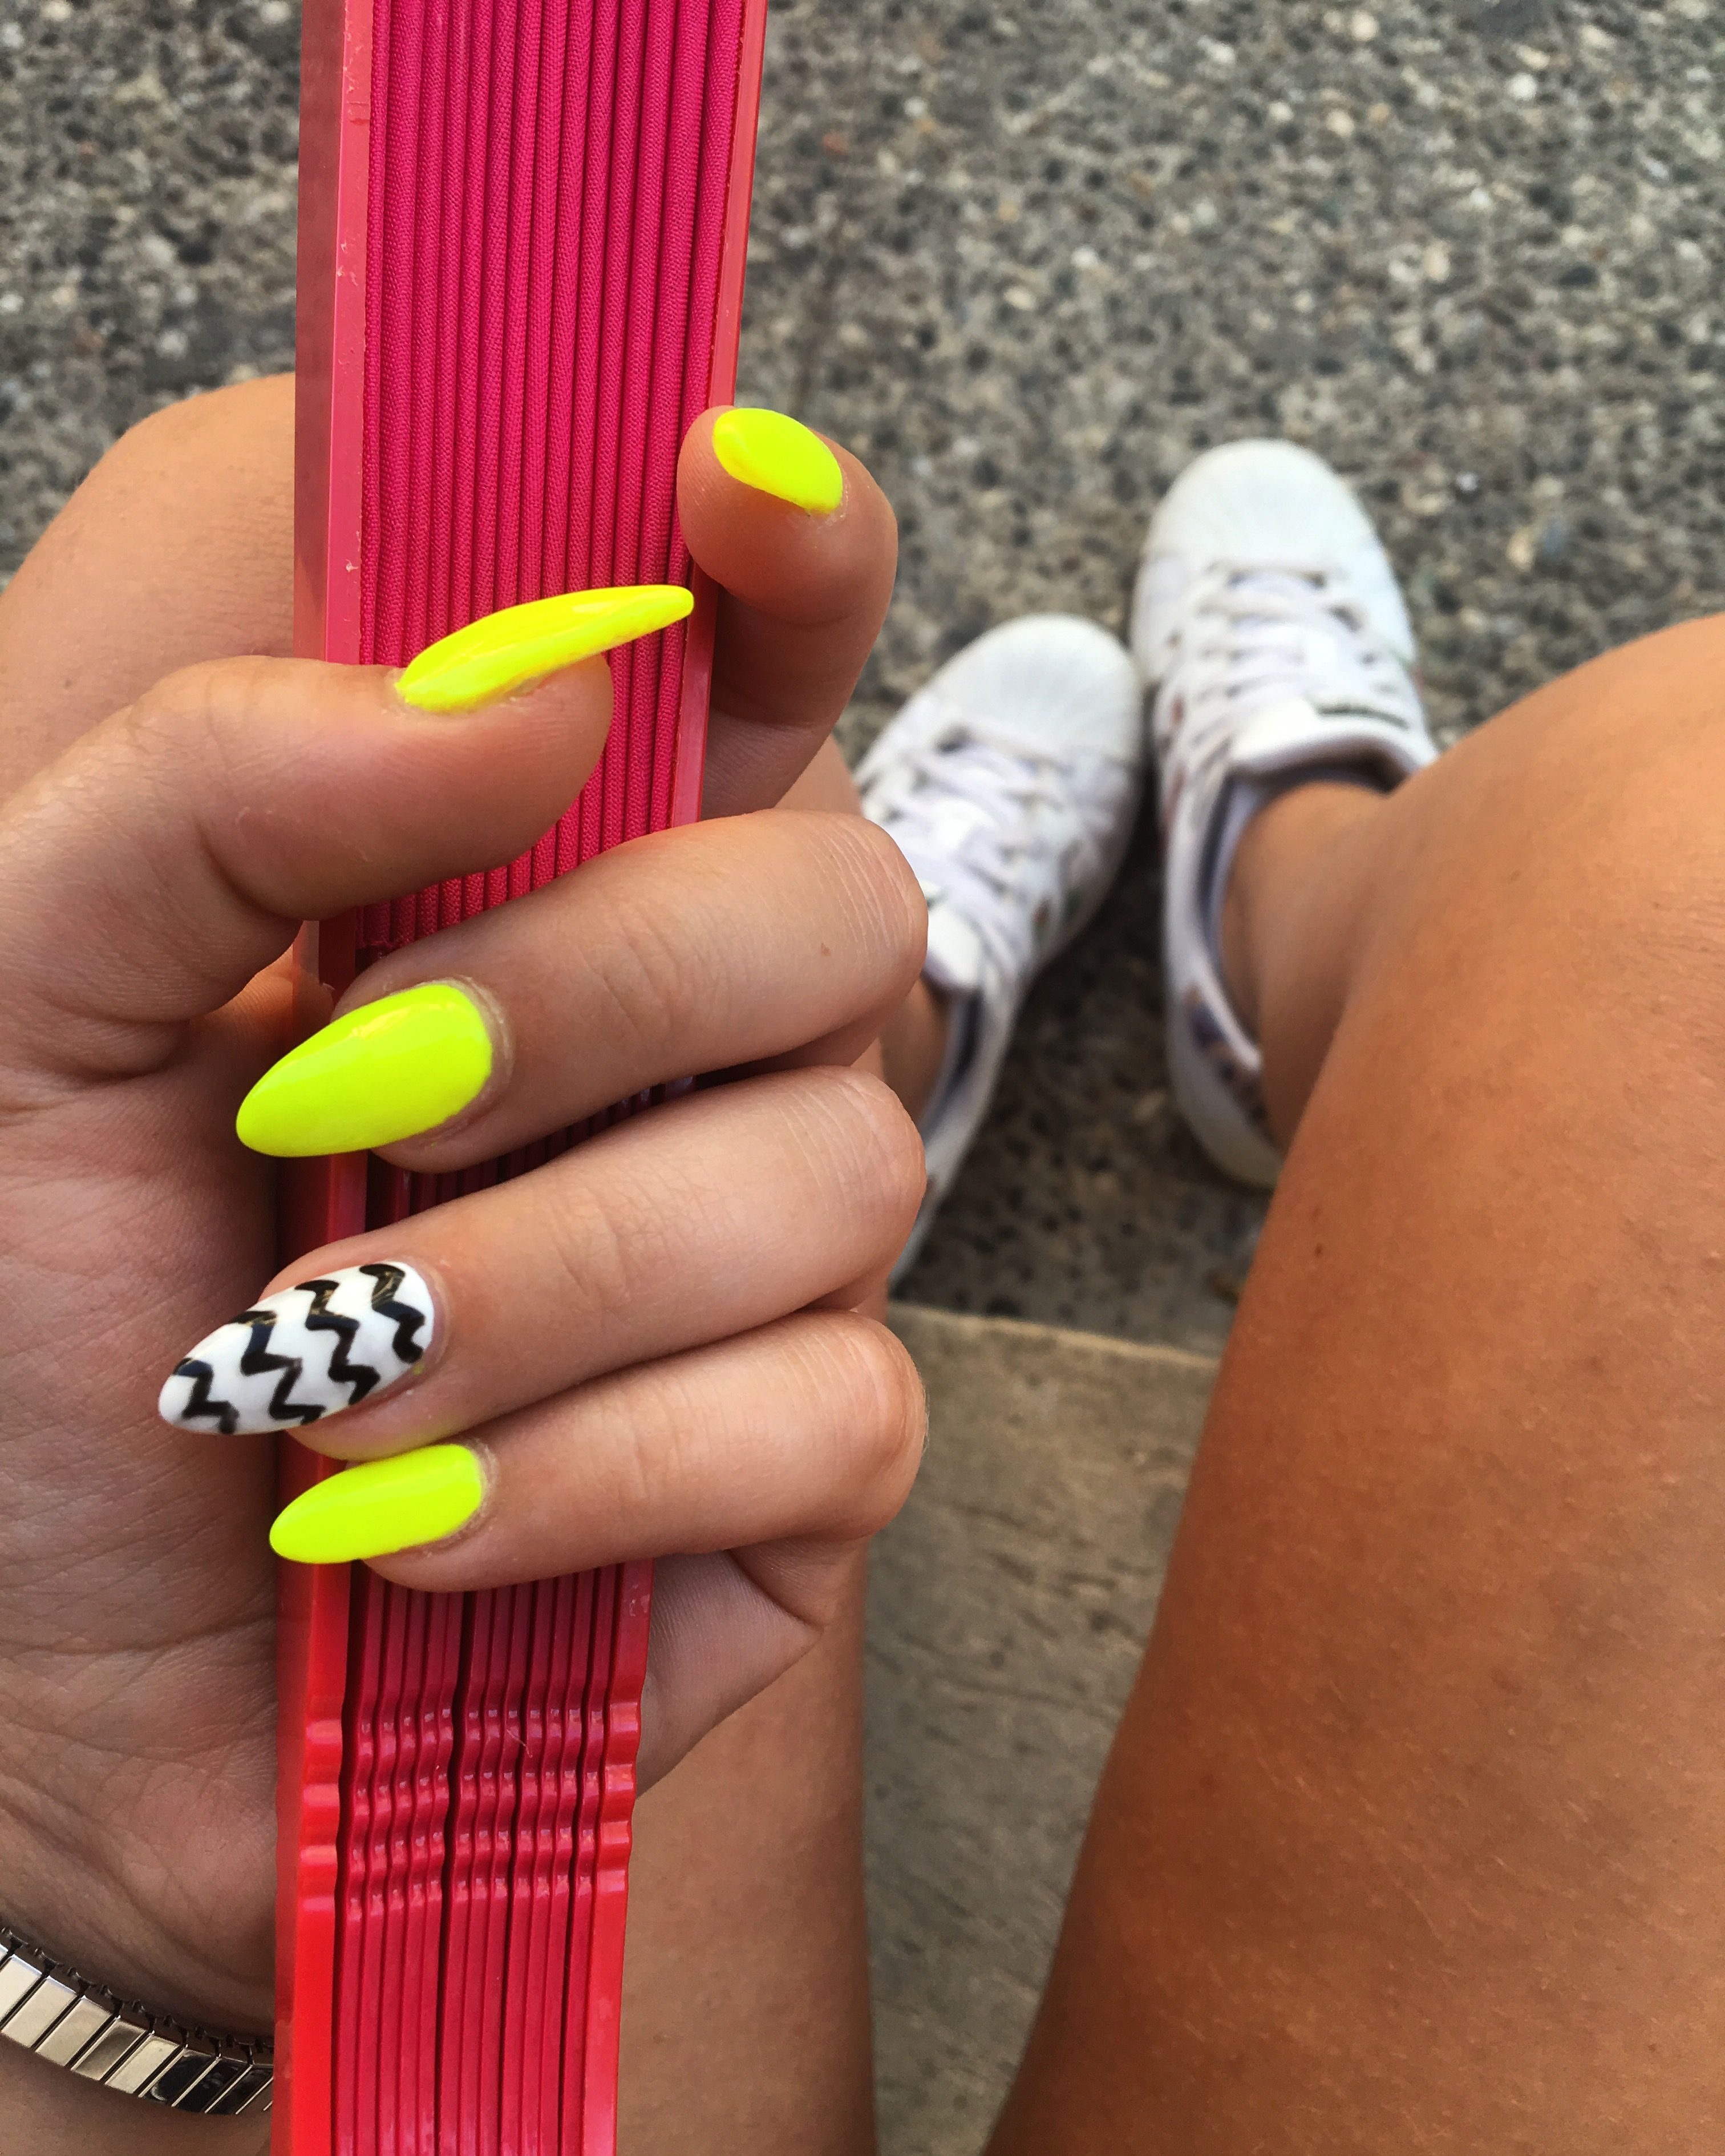 Fluo Yellow Nails Nel 2019 Gel Nails Nails E Acrylic Nails